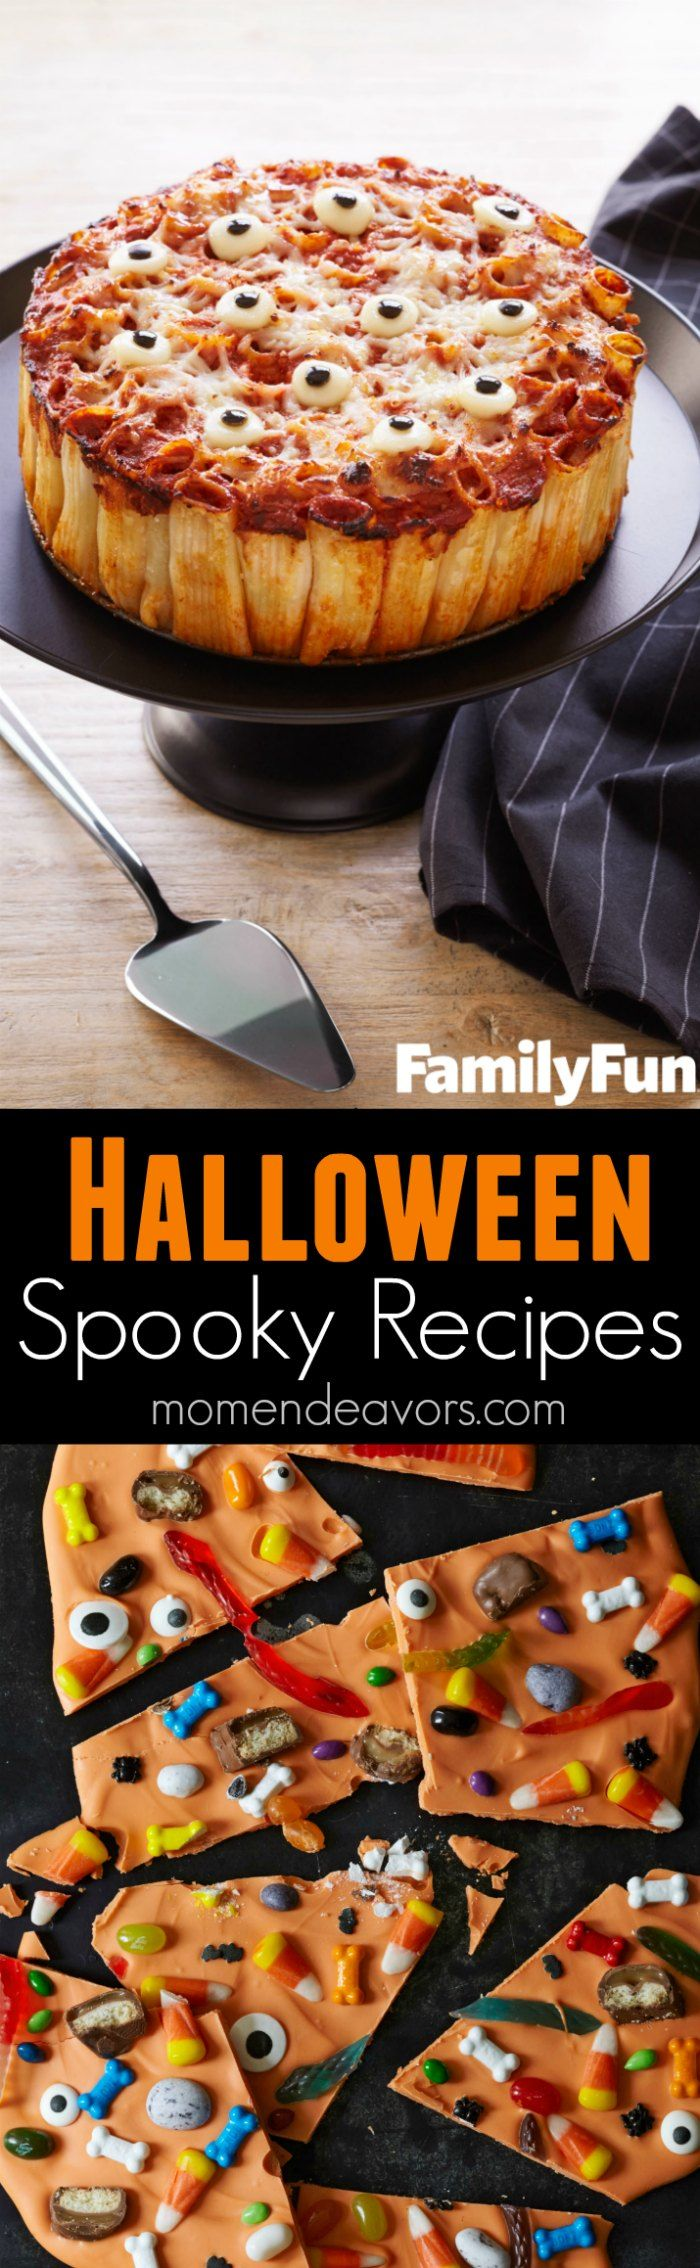 Spooky Halloween Recipes - Halloween punch, Halloween pasta, and Halloween bark - all perfect for a Halloween dinner or Halloween party!